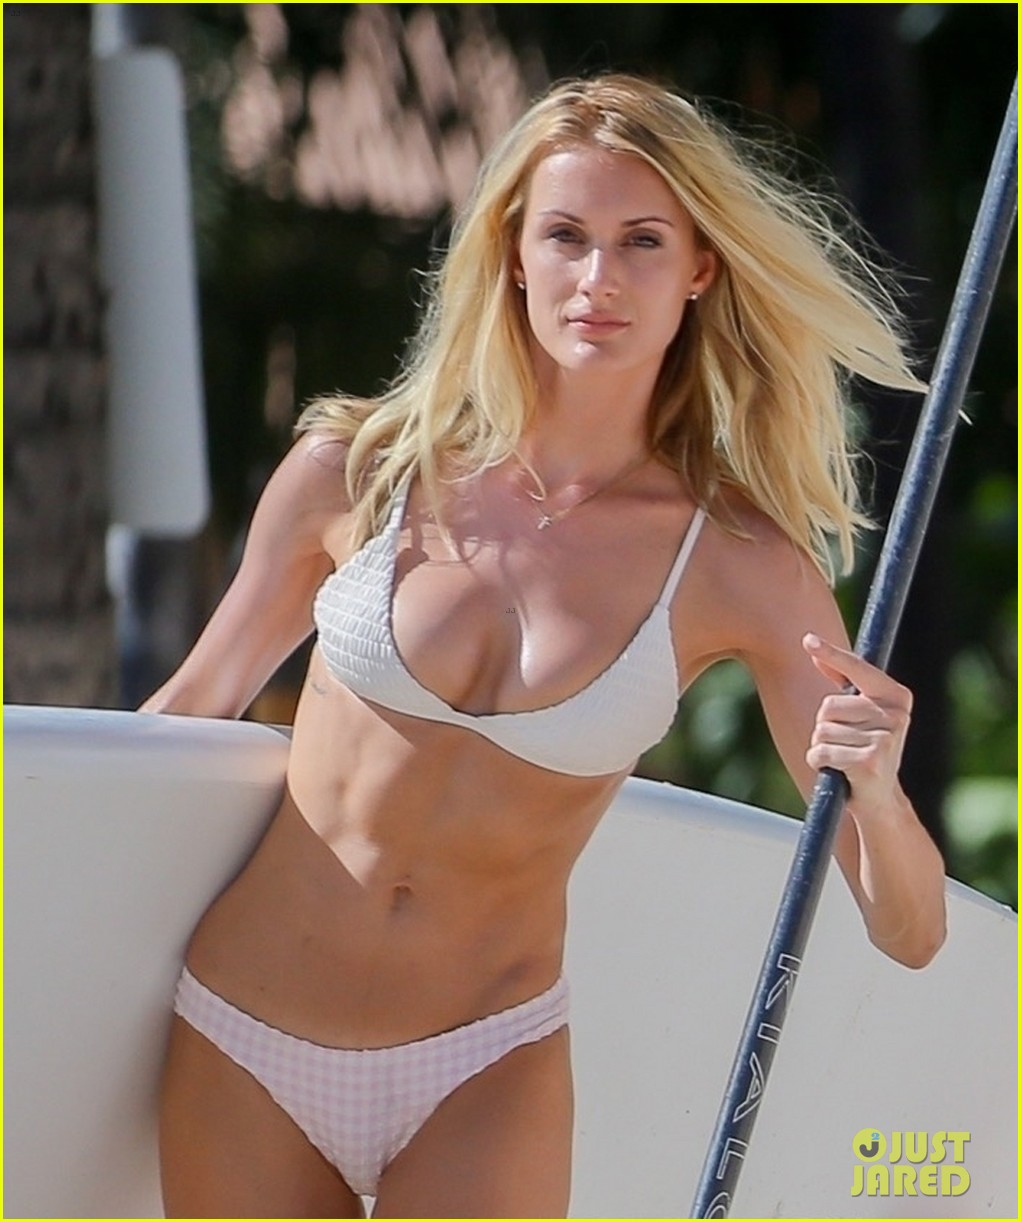 """Image result for hot images of Laura Savoie"""""""